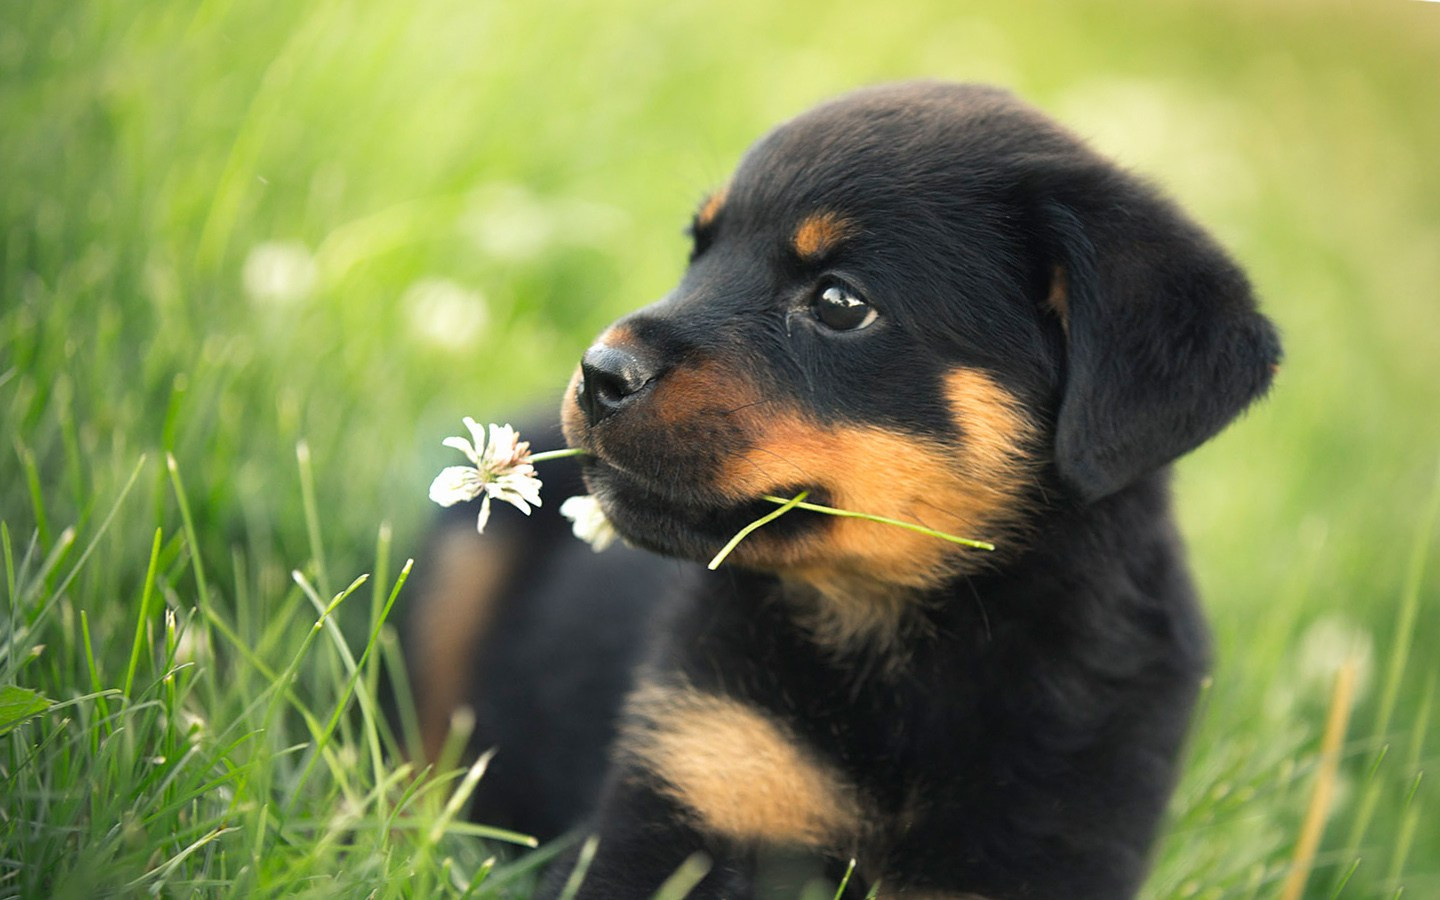 Adorable Puppy Wallpaper Awesome Rottweiler Wall Paper   Cute 1440x900